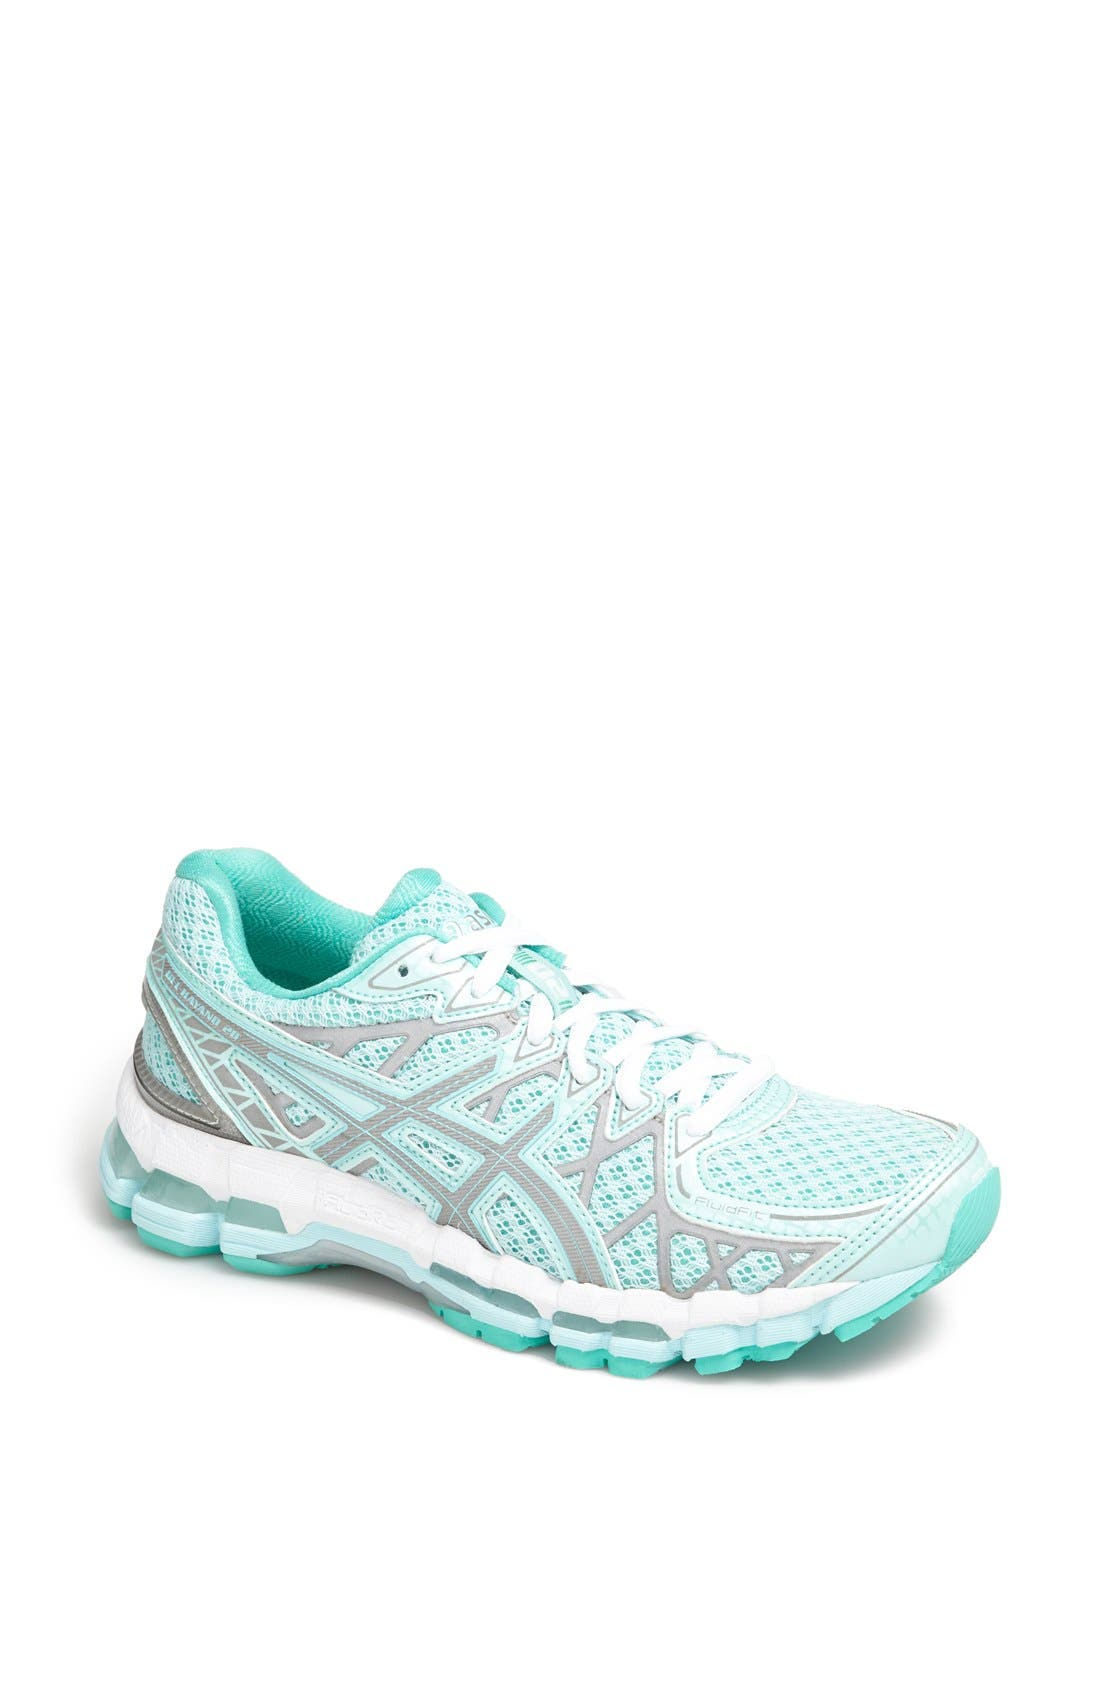 Alternate Image 1 Selected - ASICS® 'GEL-Kayano® 20 Lite' Running Shoe (Women) (Regular Retail Price: $169.95)